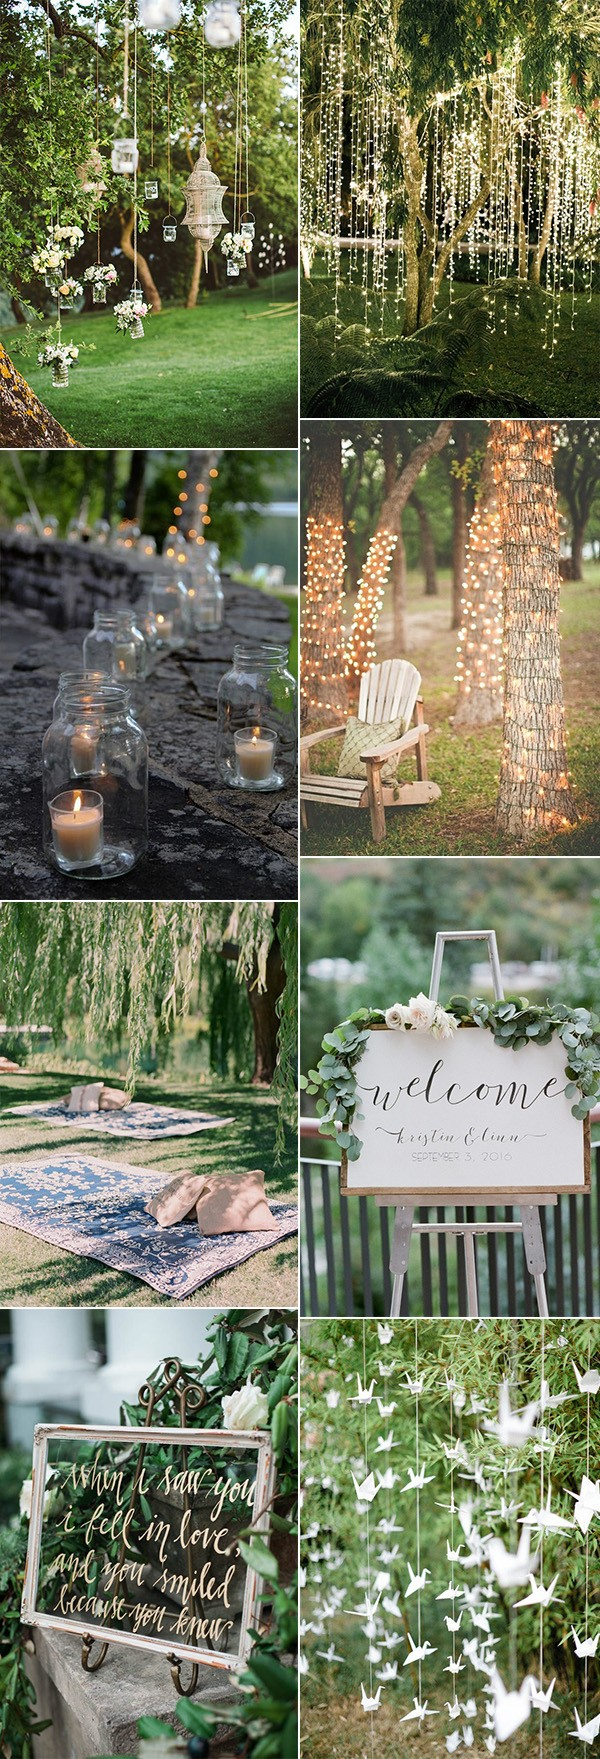 25 Brilliant Garden Wedding Decoration Ideas for 2018 Trends - Page ...